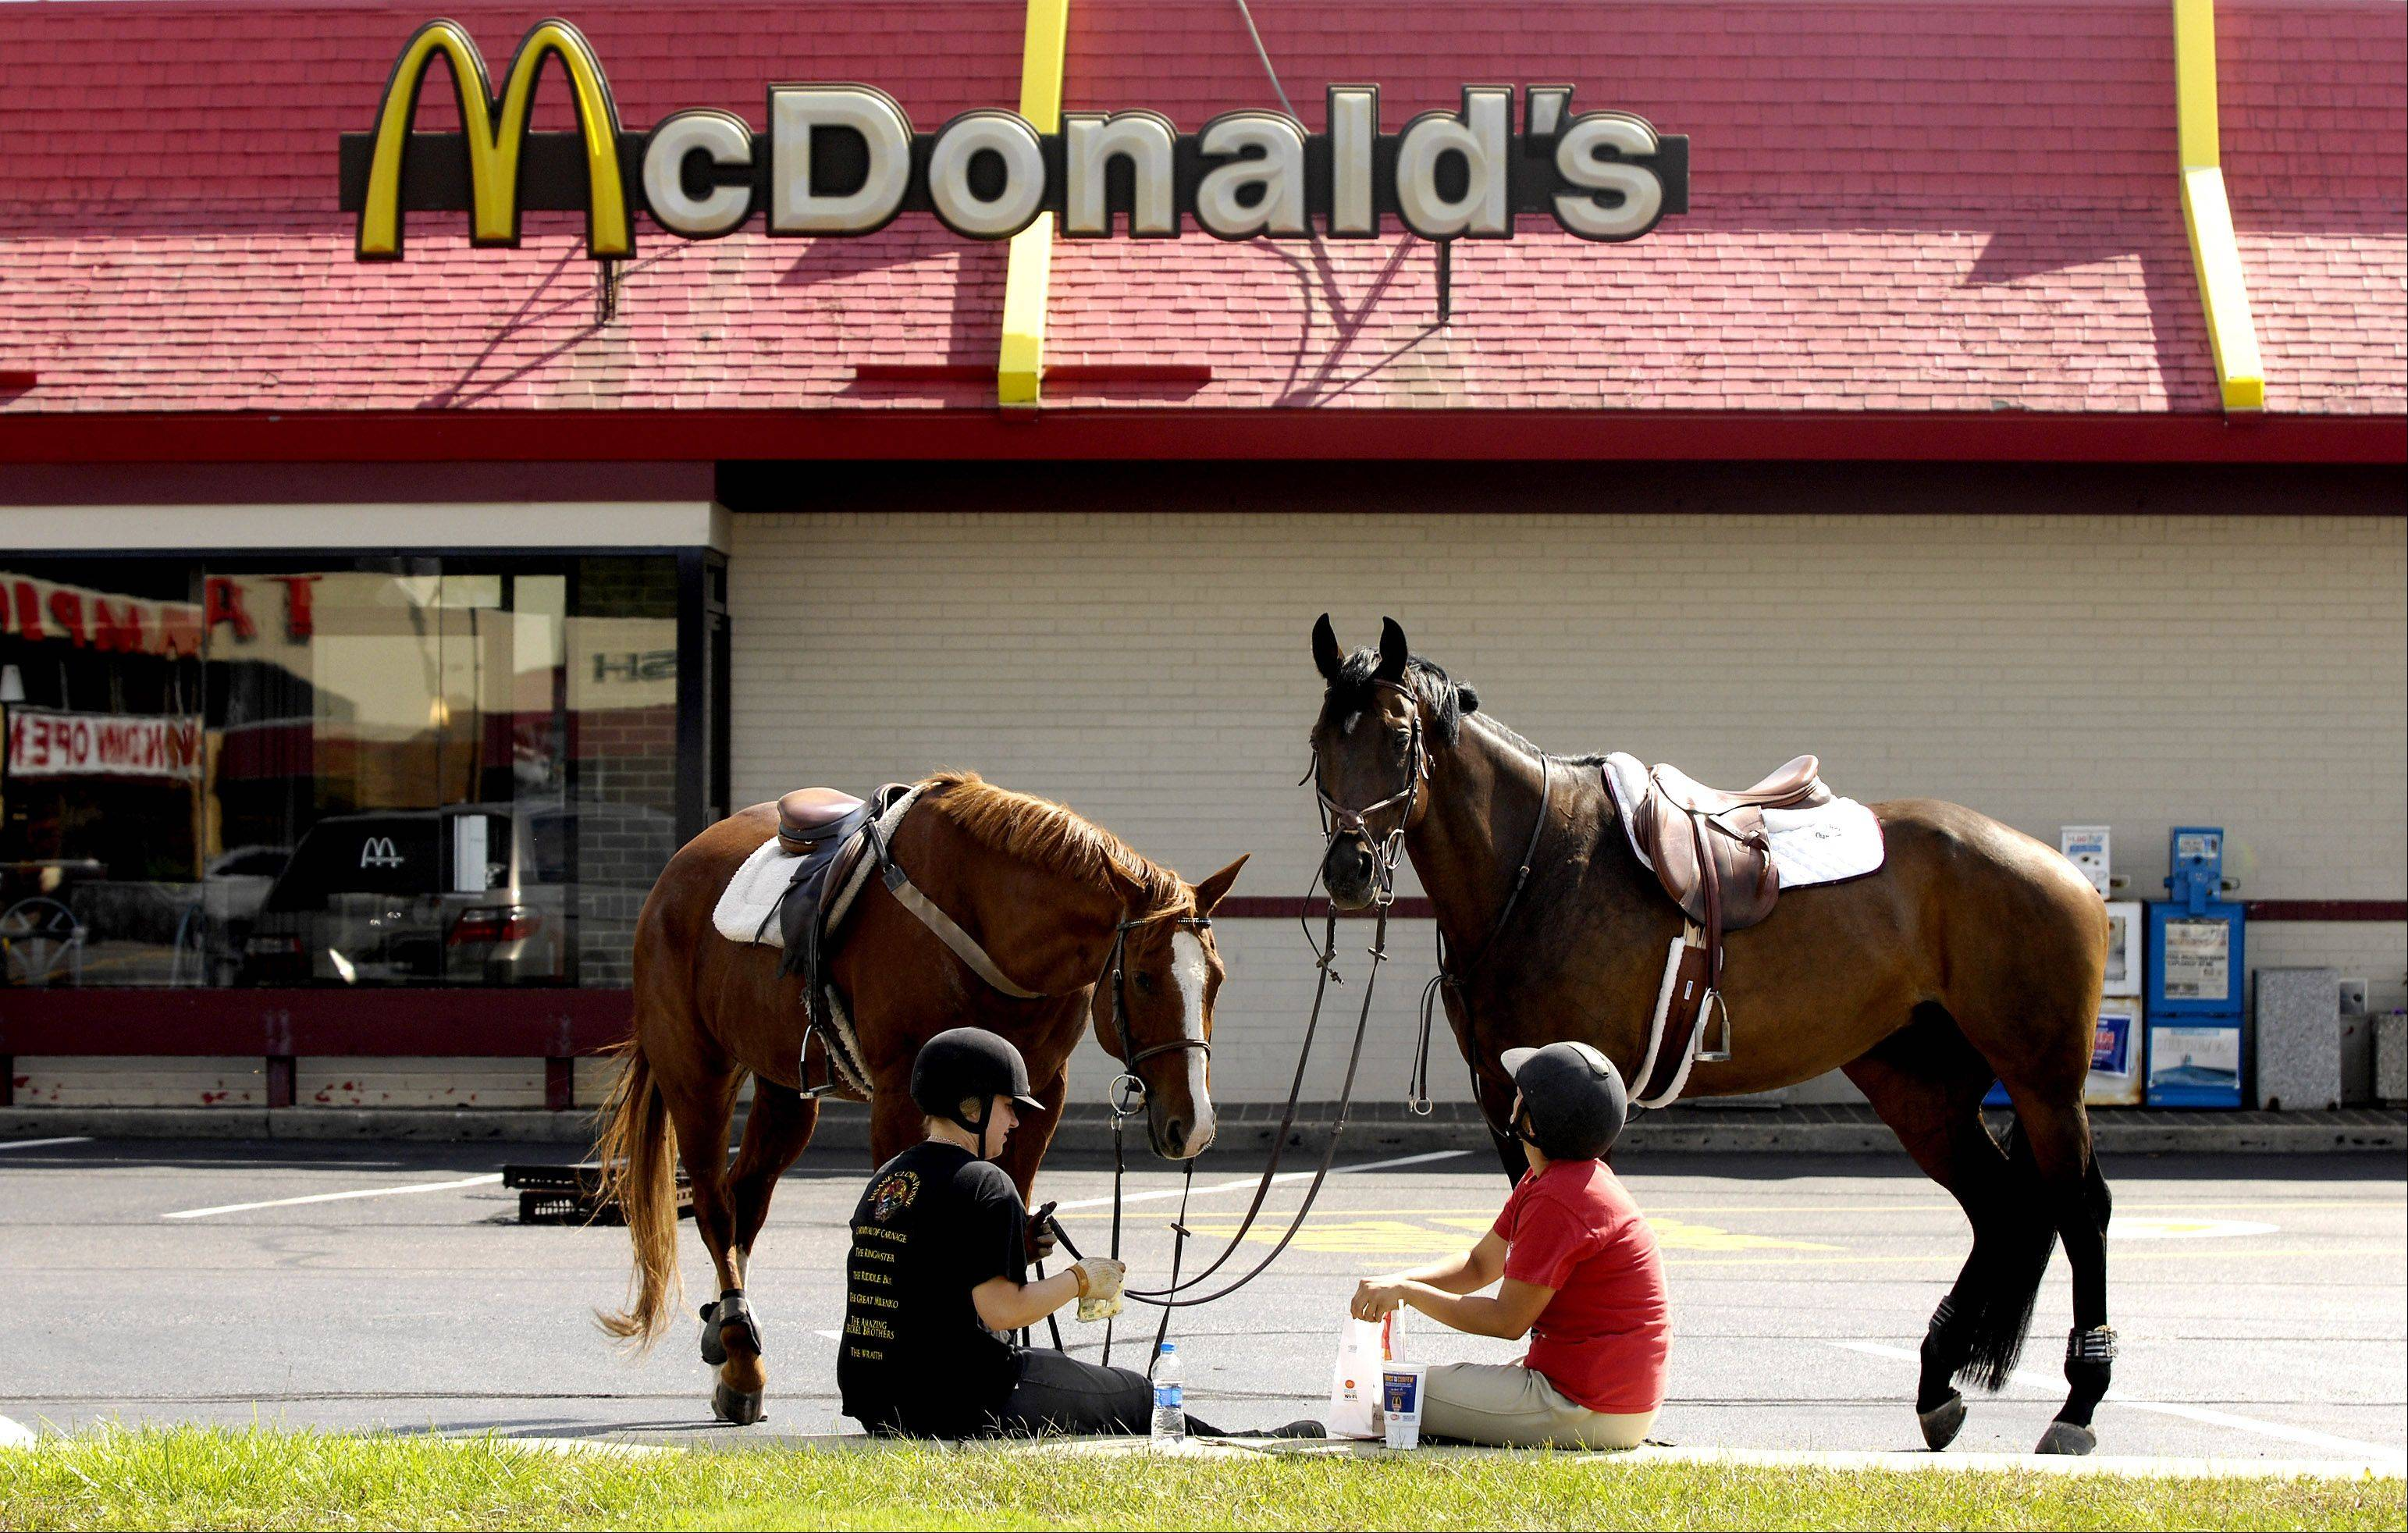 Shelby Watts of Wayne, left, with her horse, Calvin, and Alexis Muuss of Bartlett, accompanied by Ivy, take a break at the West Chicago McDonald�s on Route 59.